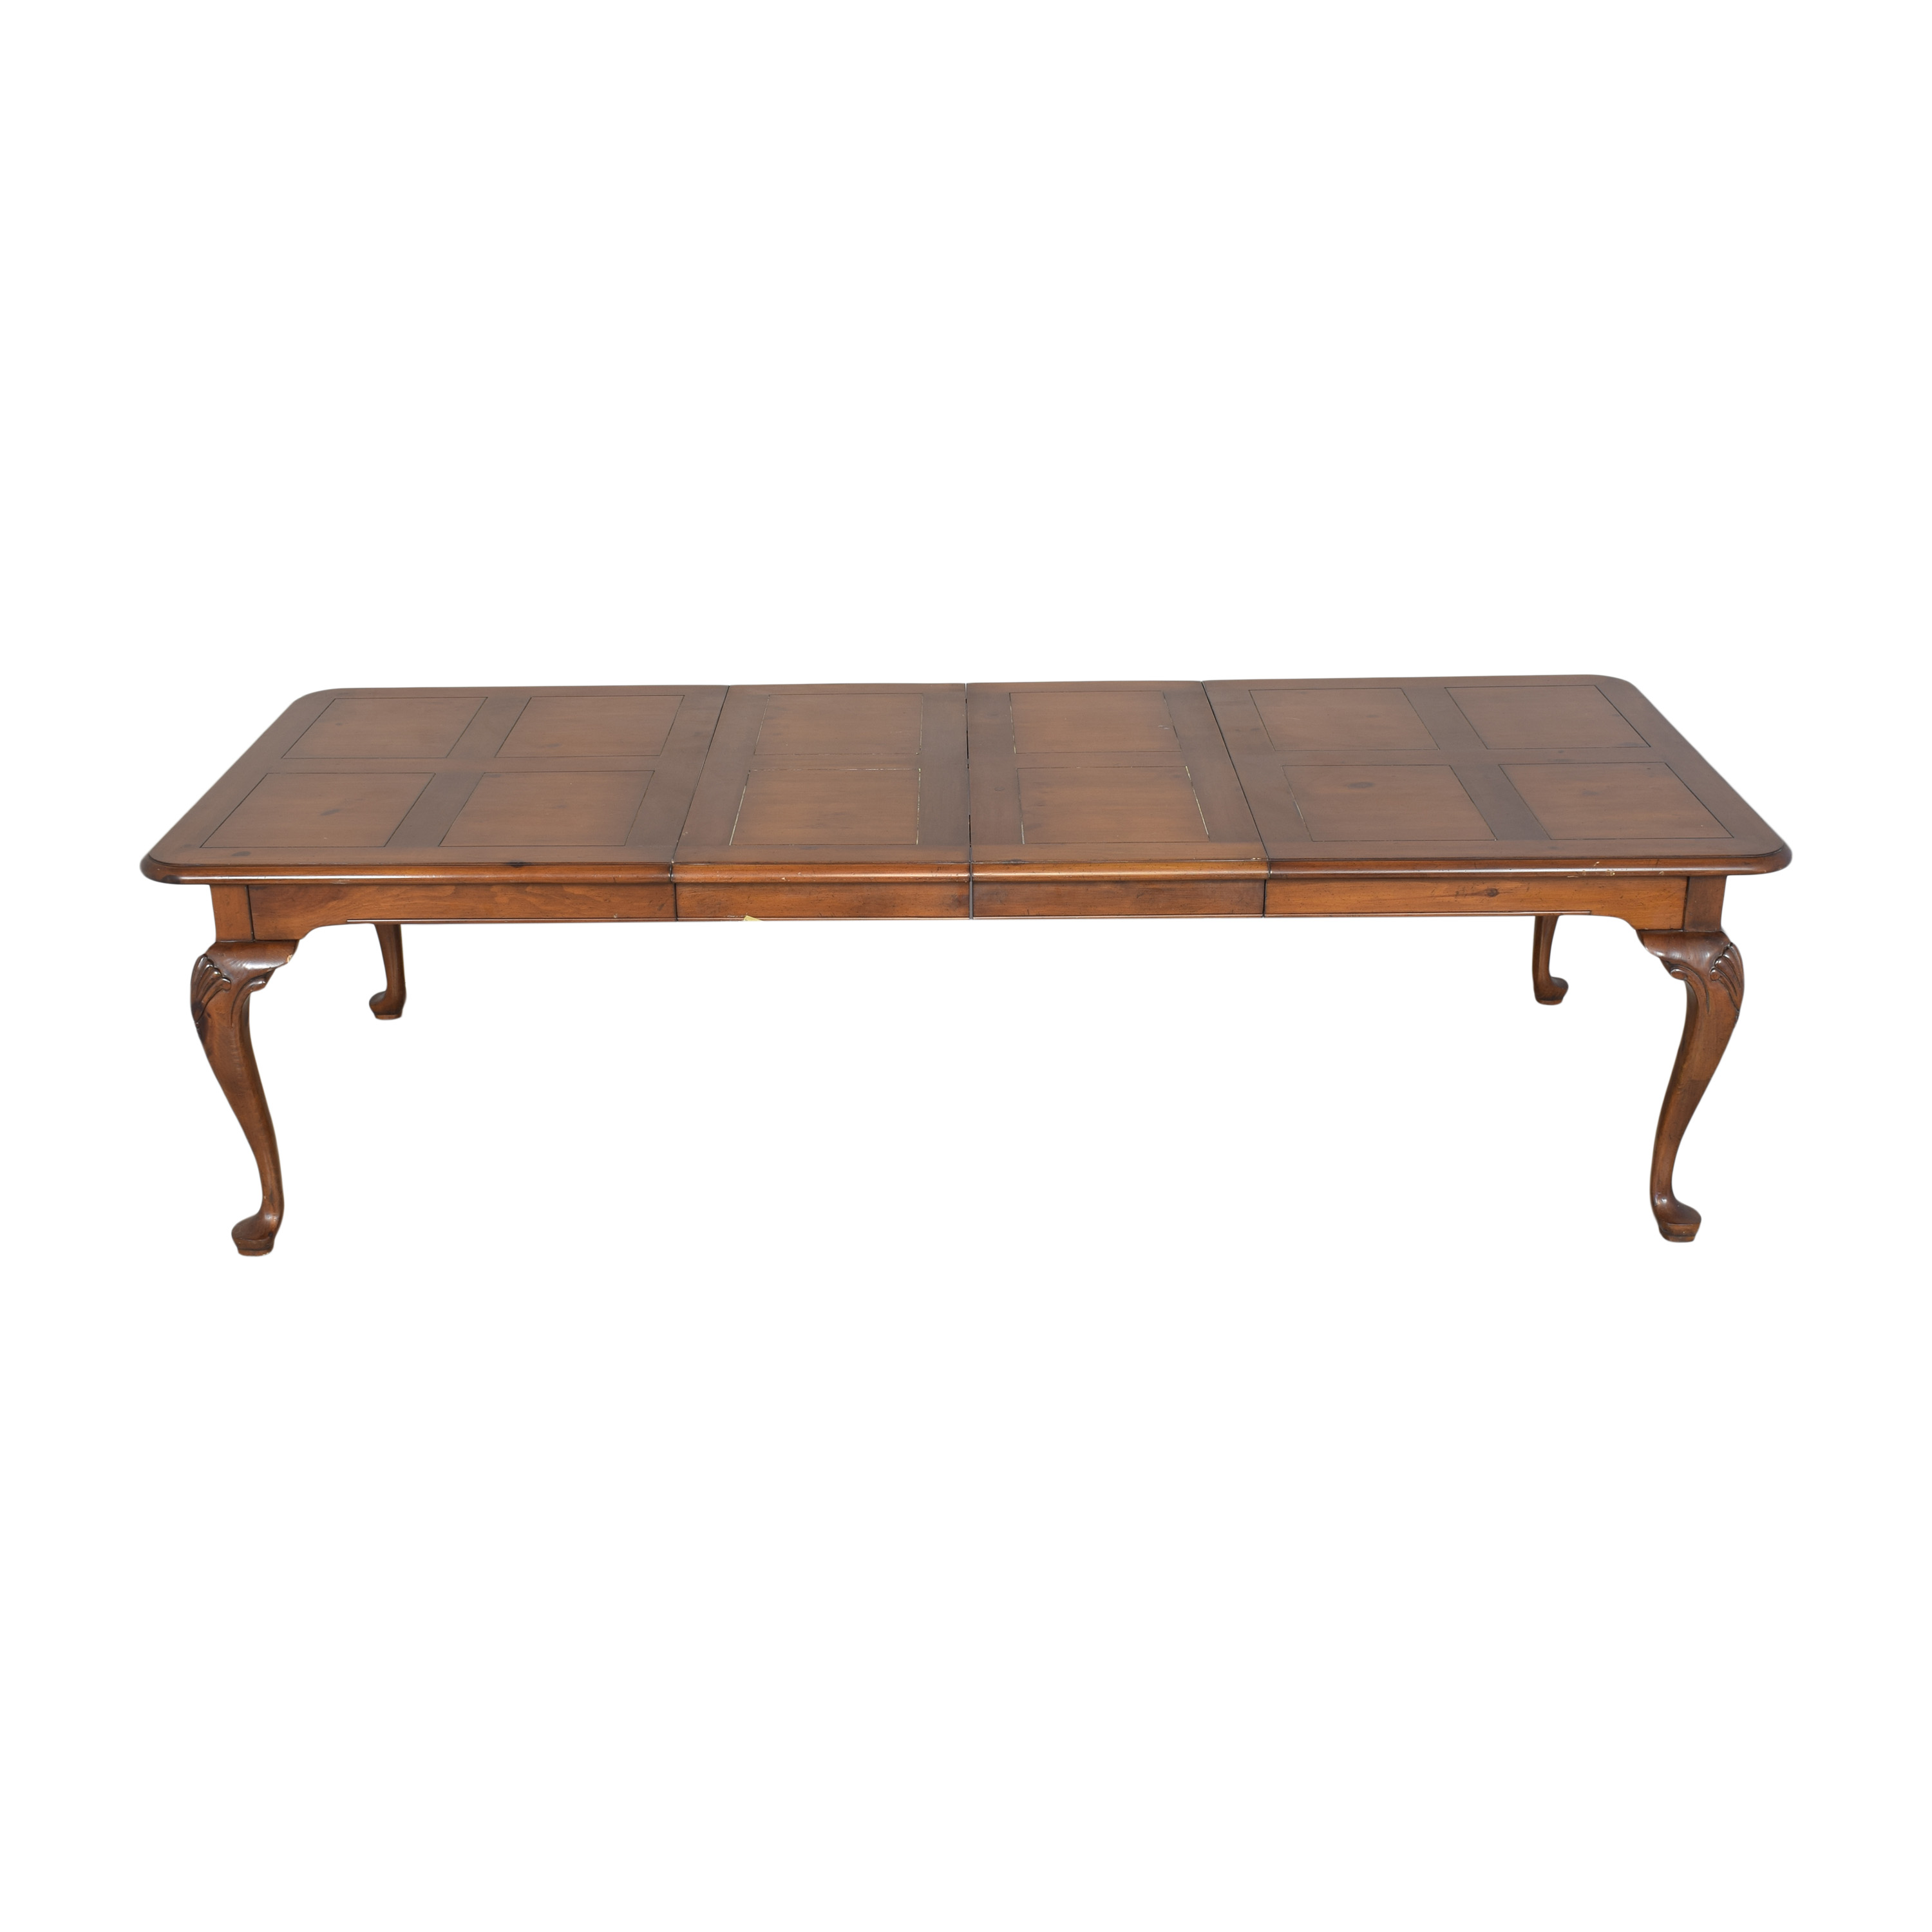 shop Fancher Furniture Extendable Dining Table Fancher Furniture Dinner Tables